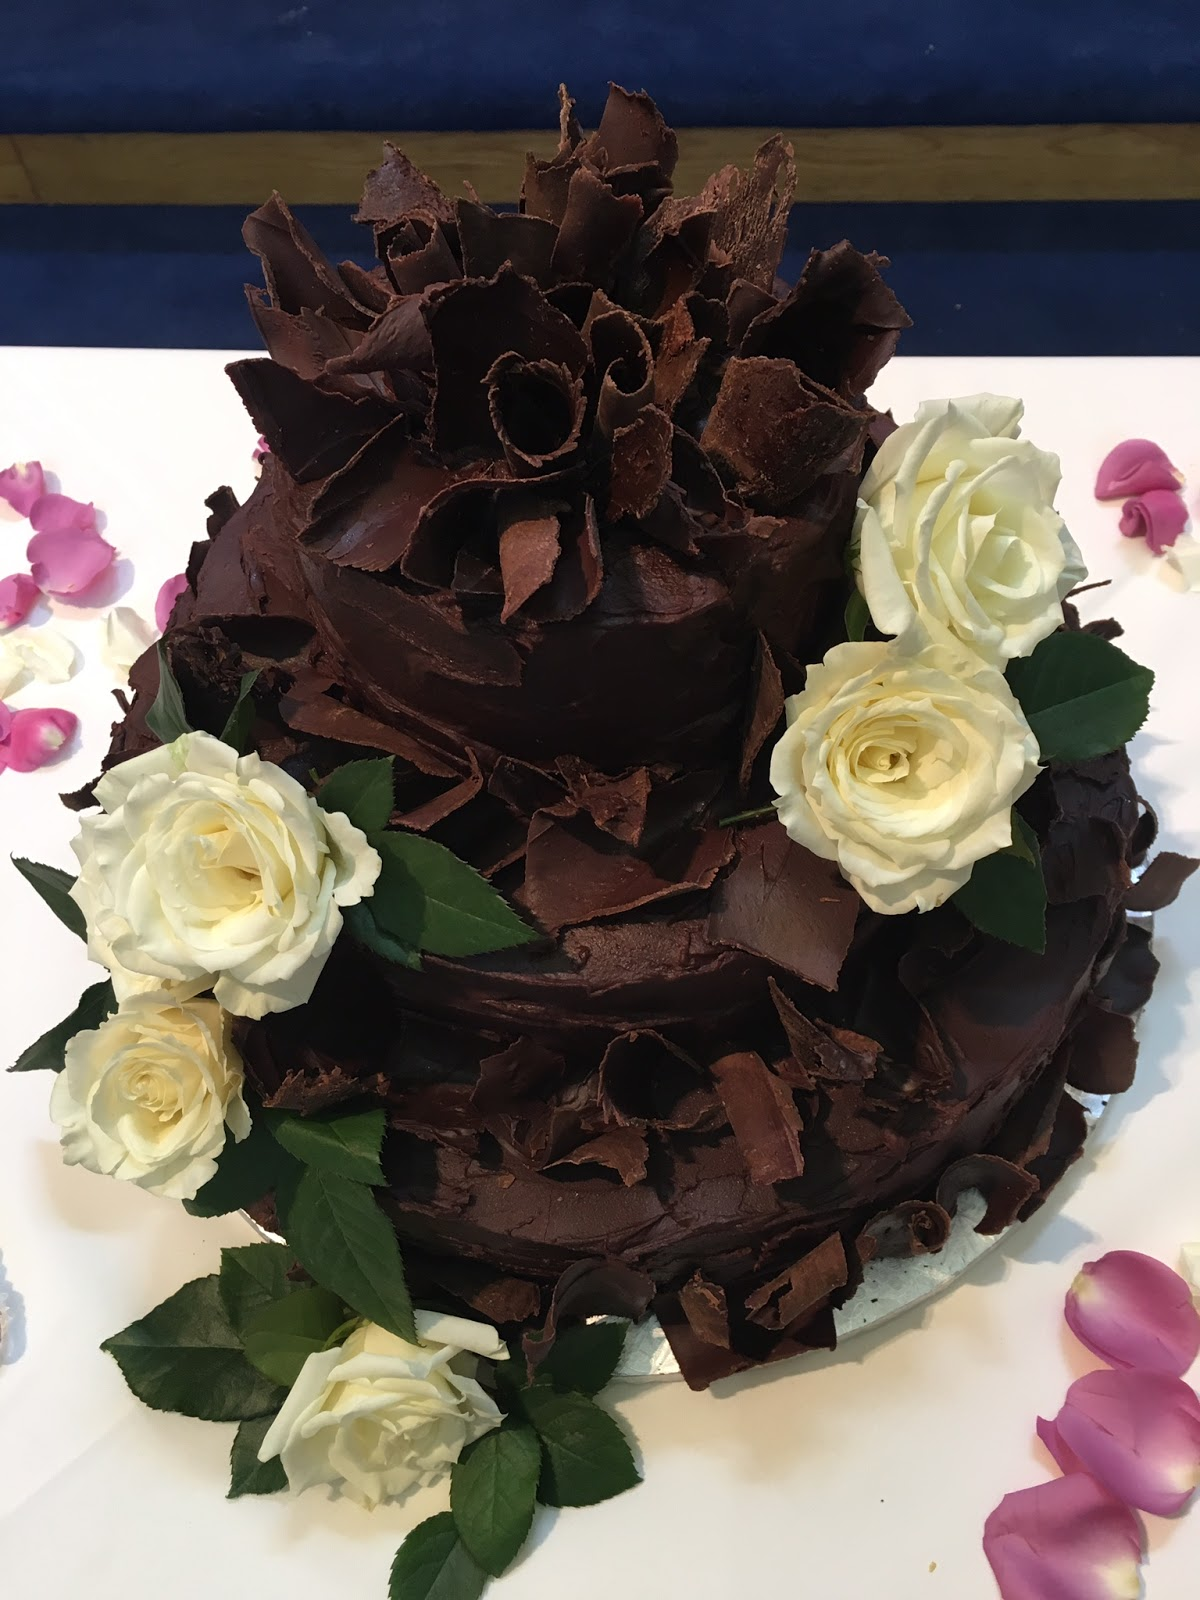 Best Ever Holy Cow Amazing Chocolate Wedding Cake Northern VA DC